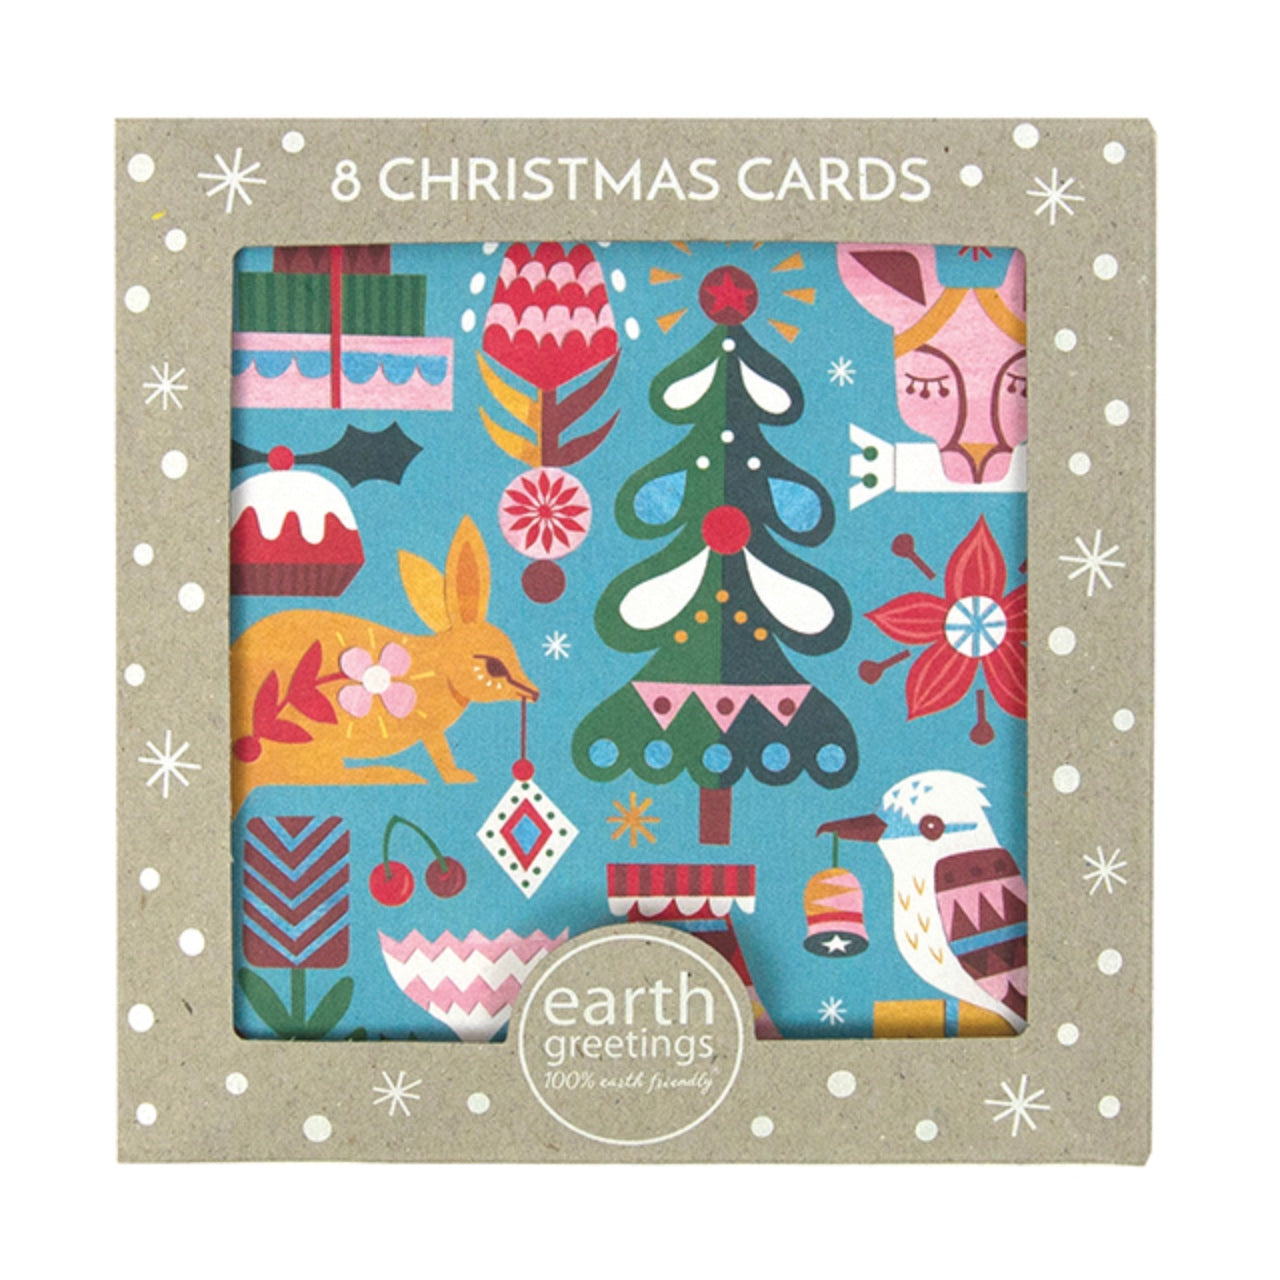 Earth Greetings Boxed Christmas Cards -Bushland Greetings